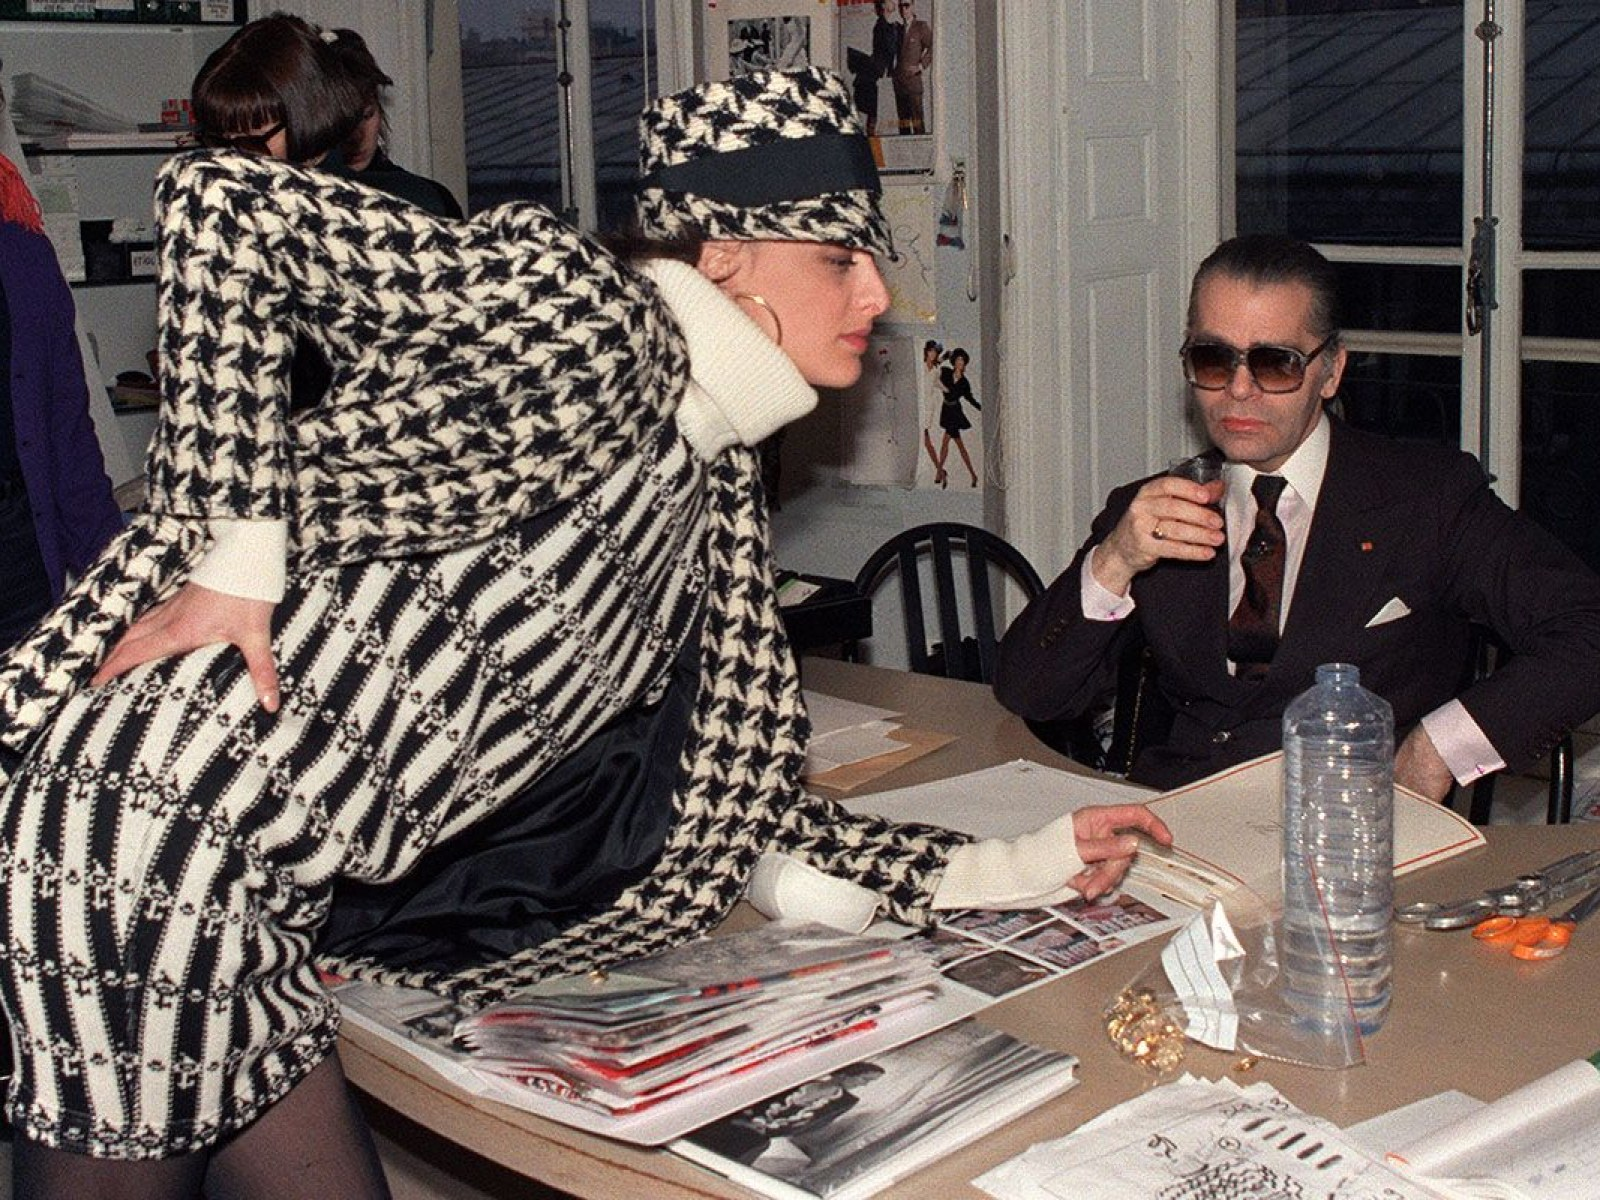 17a4586b4104 Karl Lagerfeld's Fashion Legacy: Designer's Greatest Creations in Pictures